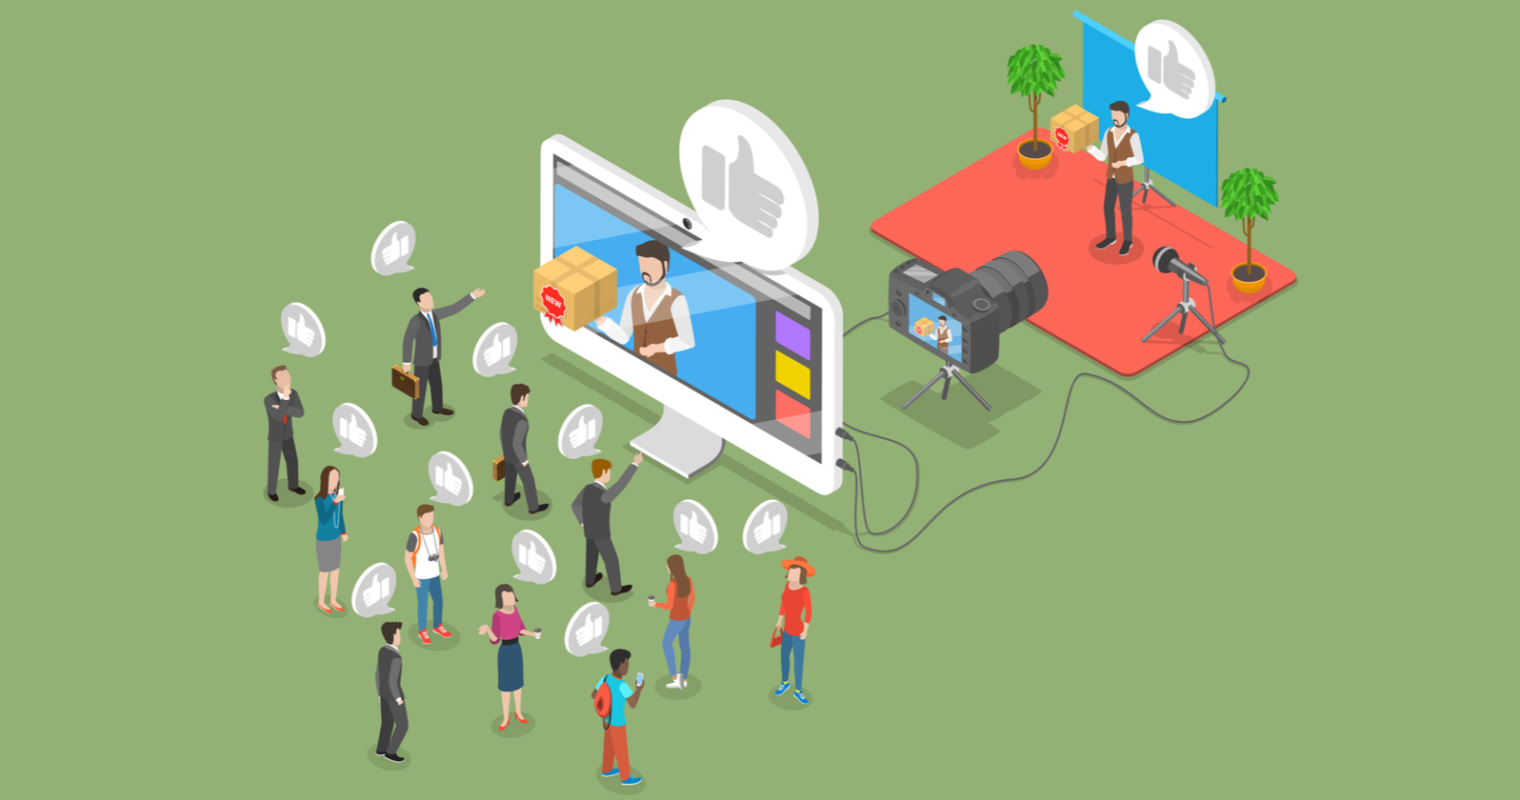 5 Top Influencer Marketing Tools to Find the Most Influential People